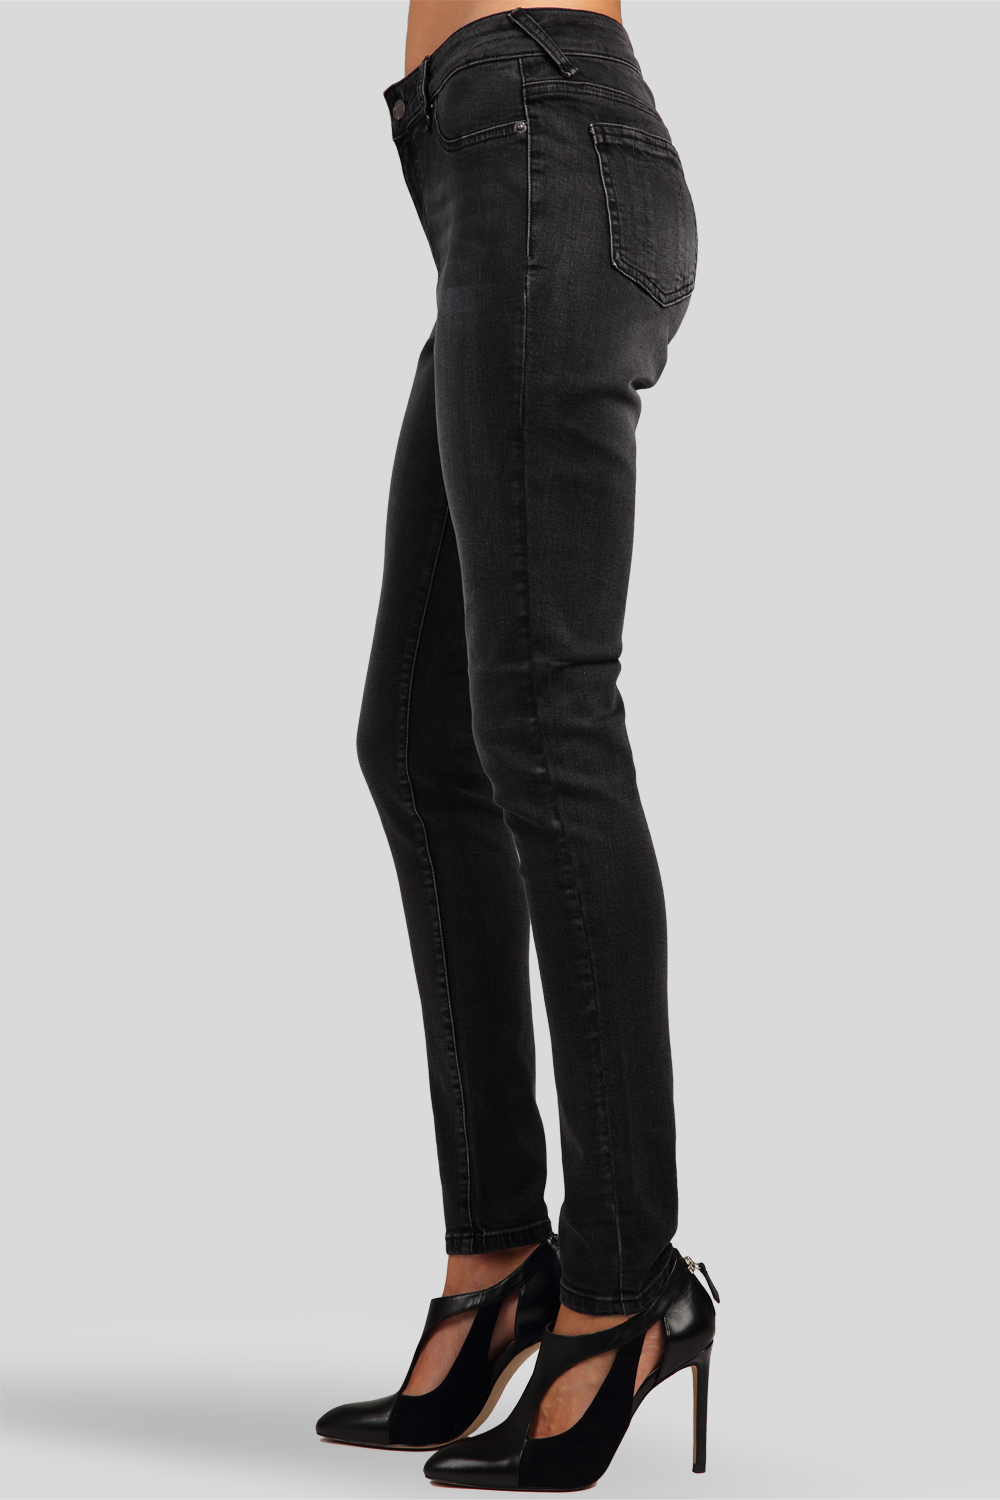 Stretch Woven Gray Good Midrise Skinny Jeans